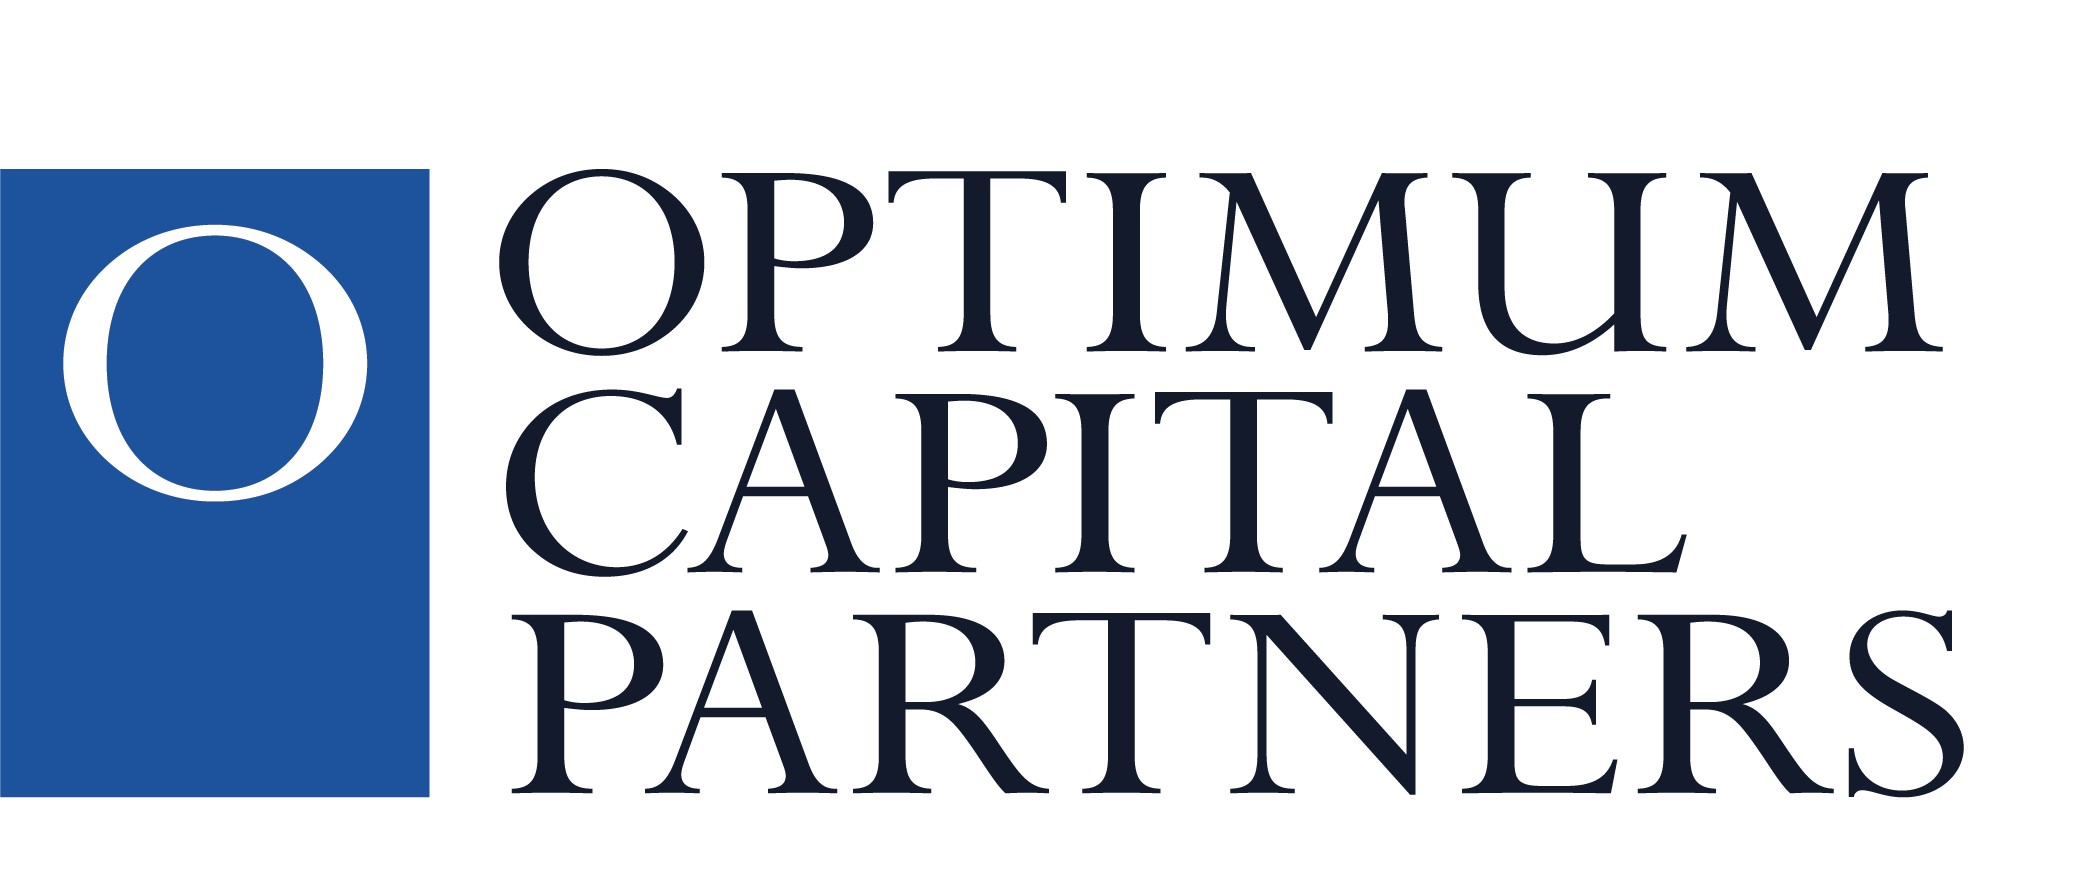 Optimun Capital Partners